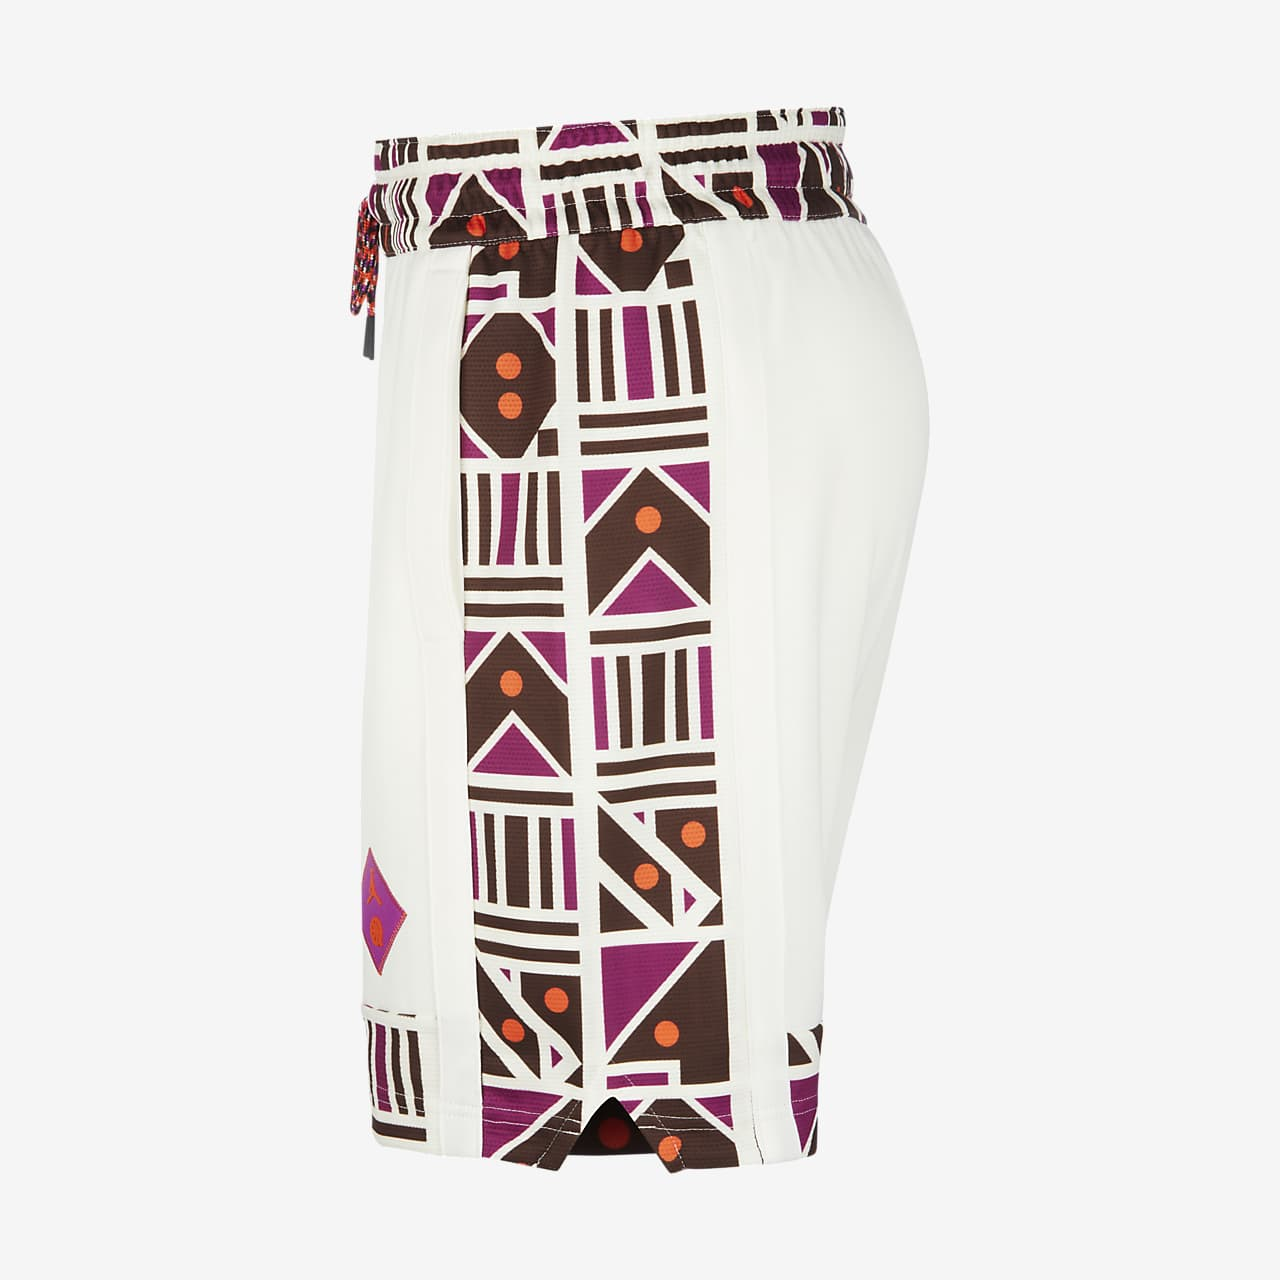 Jordan Air Quai 54 Basketbalshorts voor heren